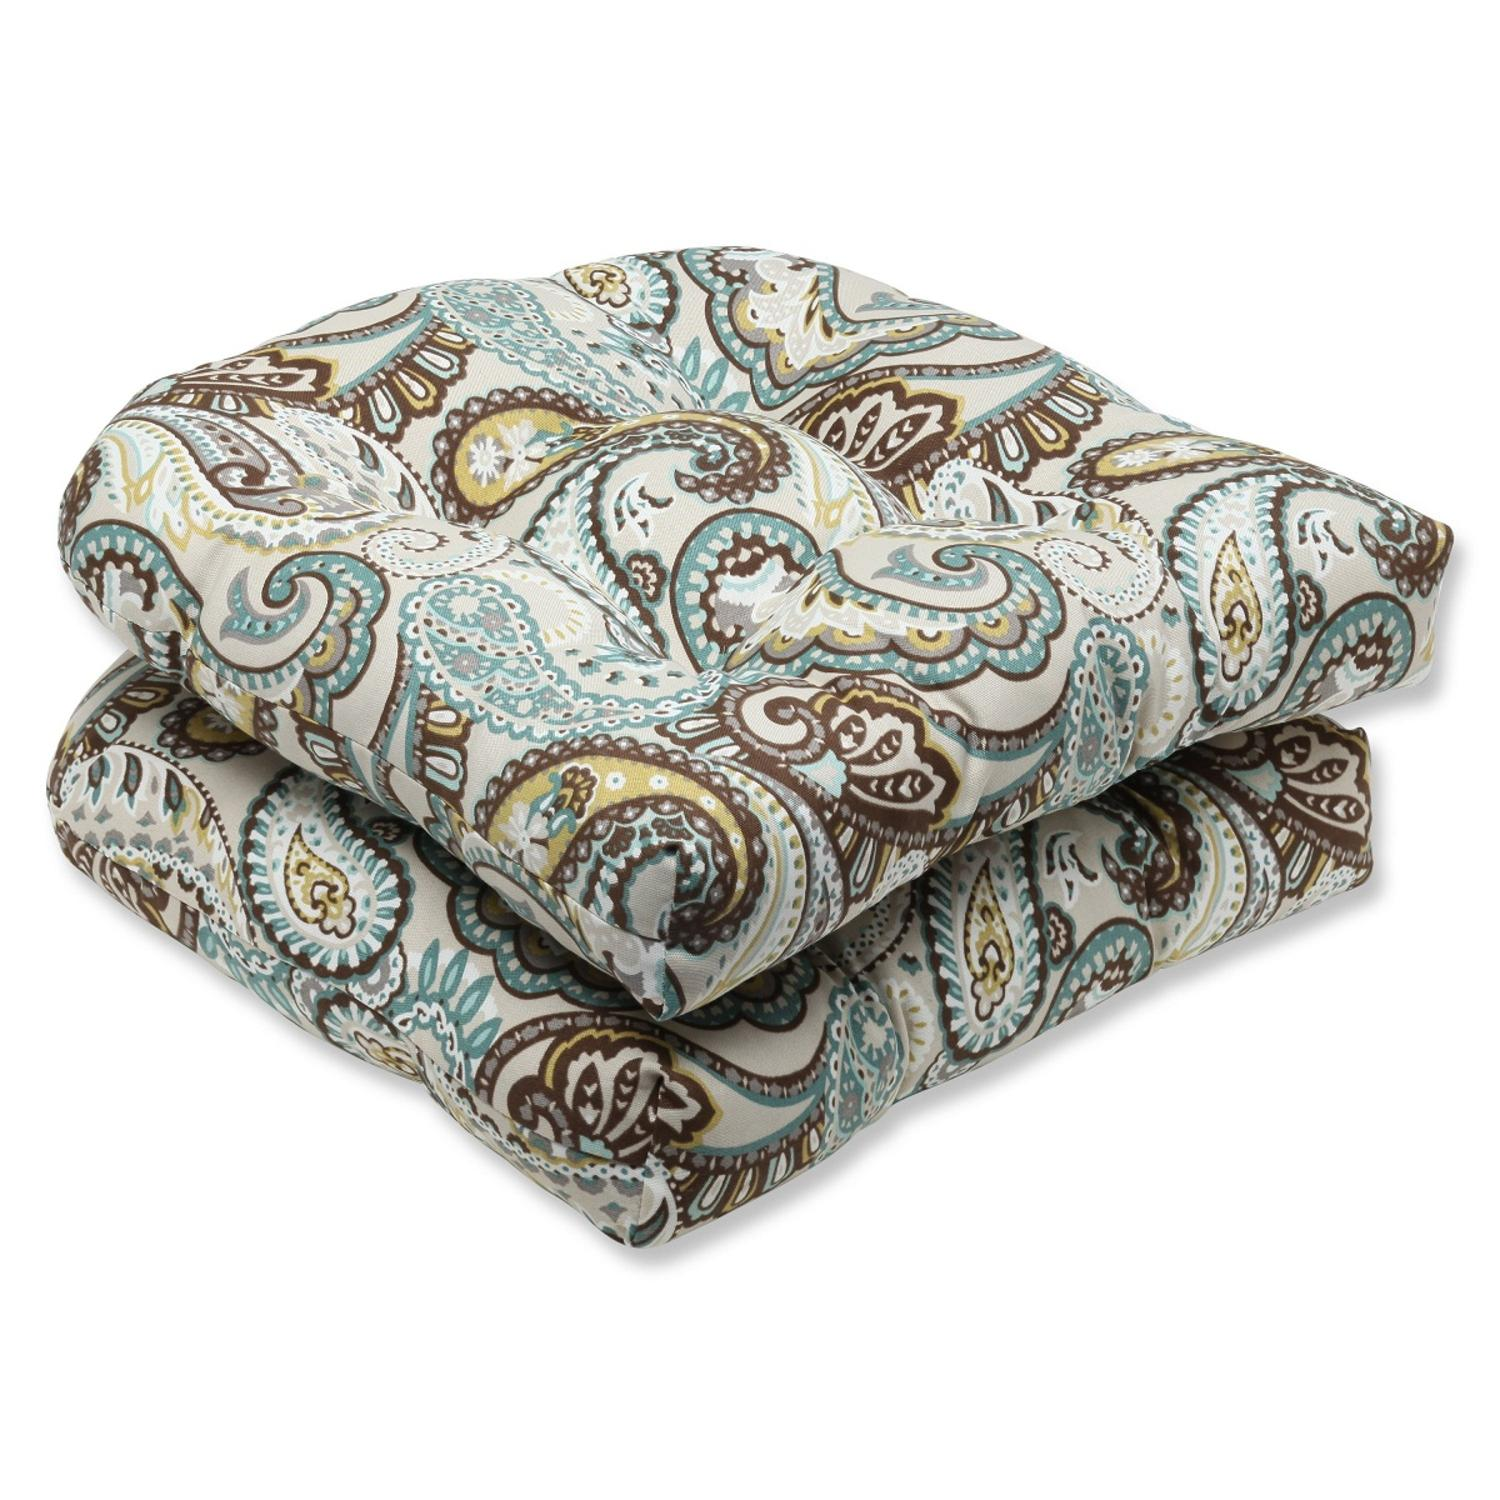 Set of 2 Paisley Giardino Light Blue and Brown Outdoor Patio Wicker Chair Cushions 19